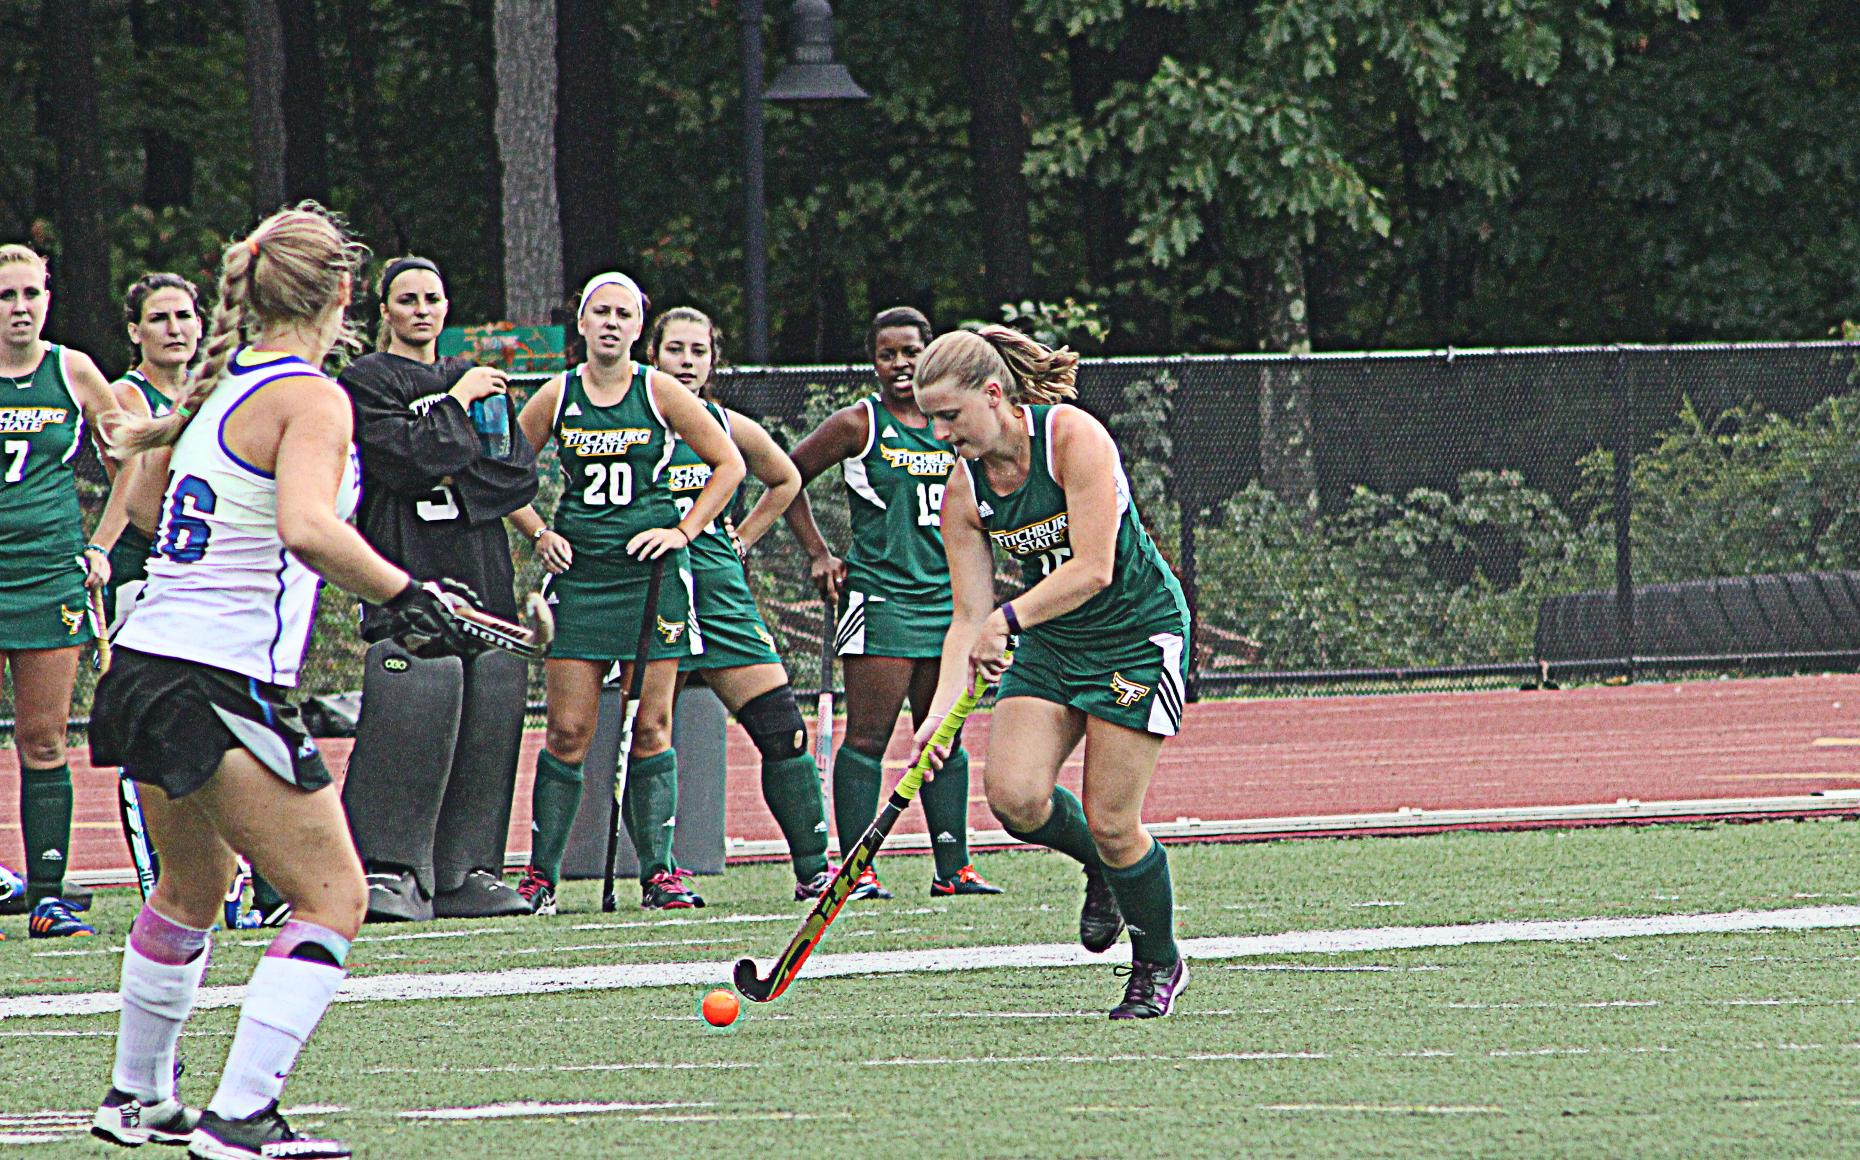 Fitchburg State Blanks Colby-Sawyer, 4-0